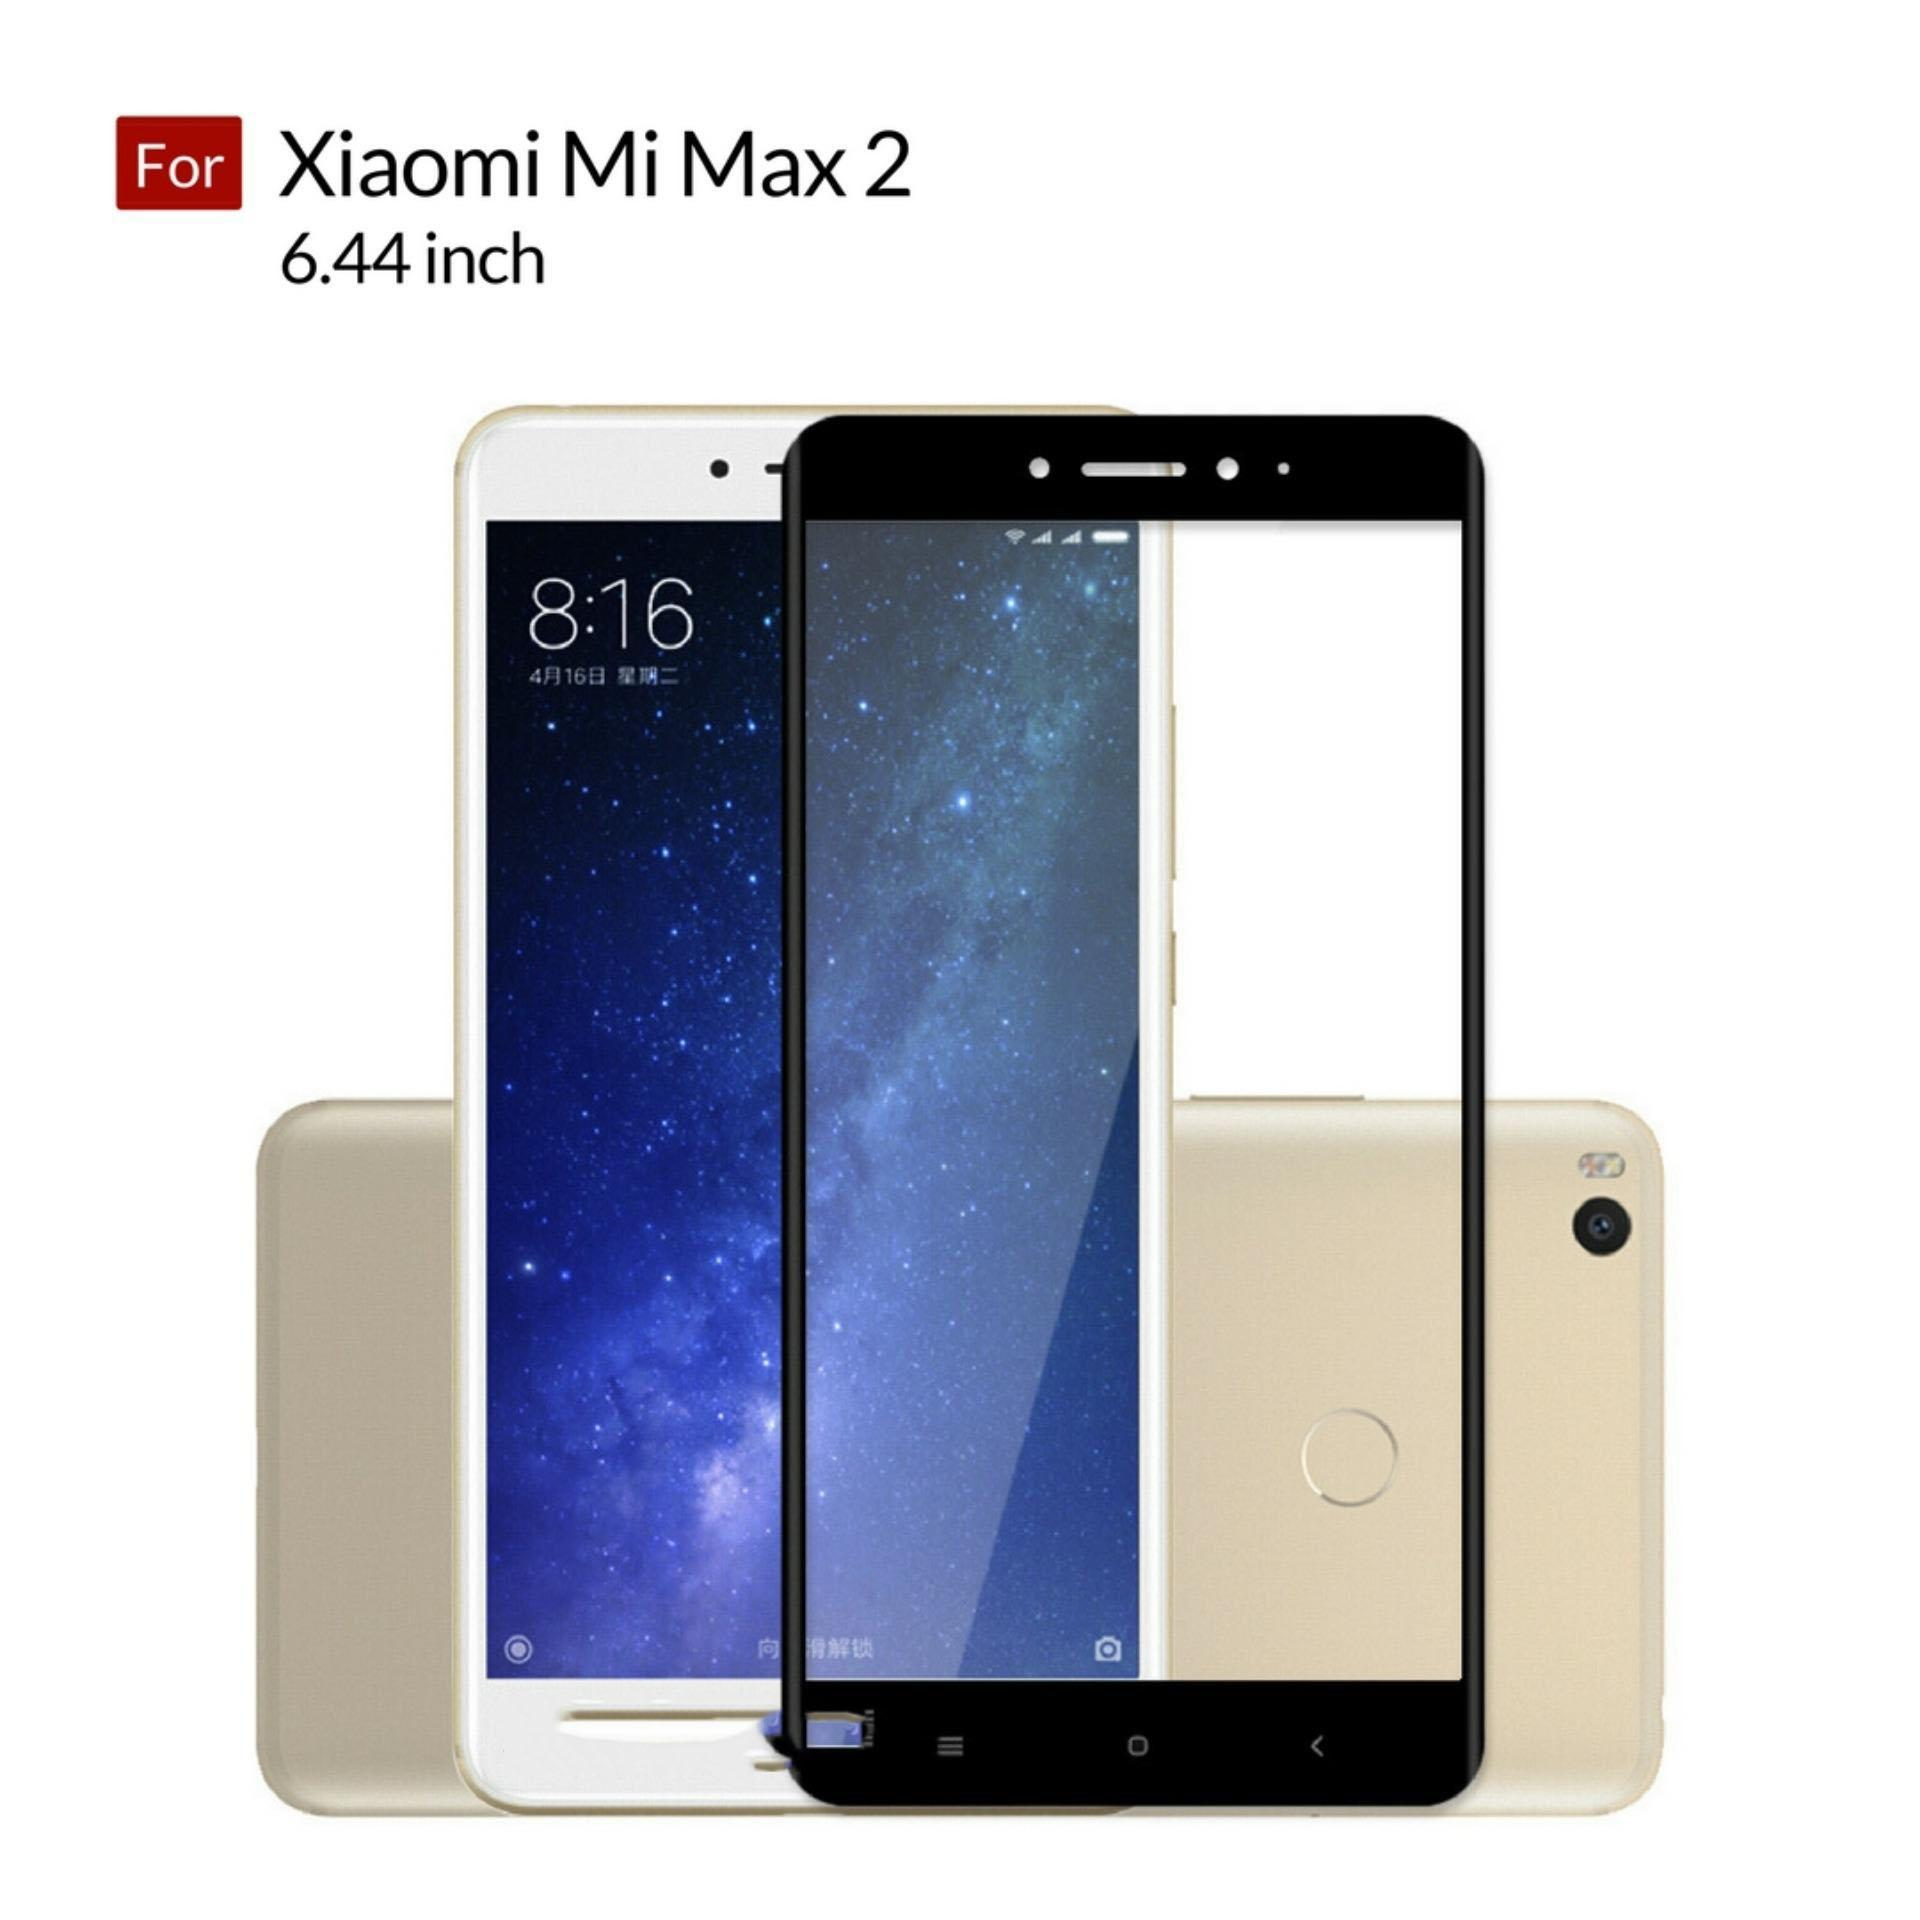 Accessories Hp Full Cover Tempered Glass Warna Screen Protector for Xiaomi Mi Max 2 6.44 inch - Black